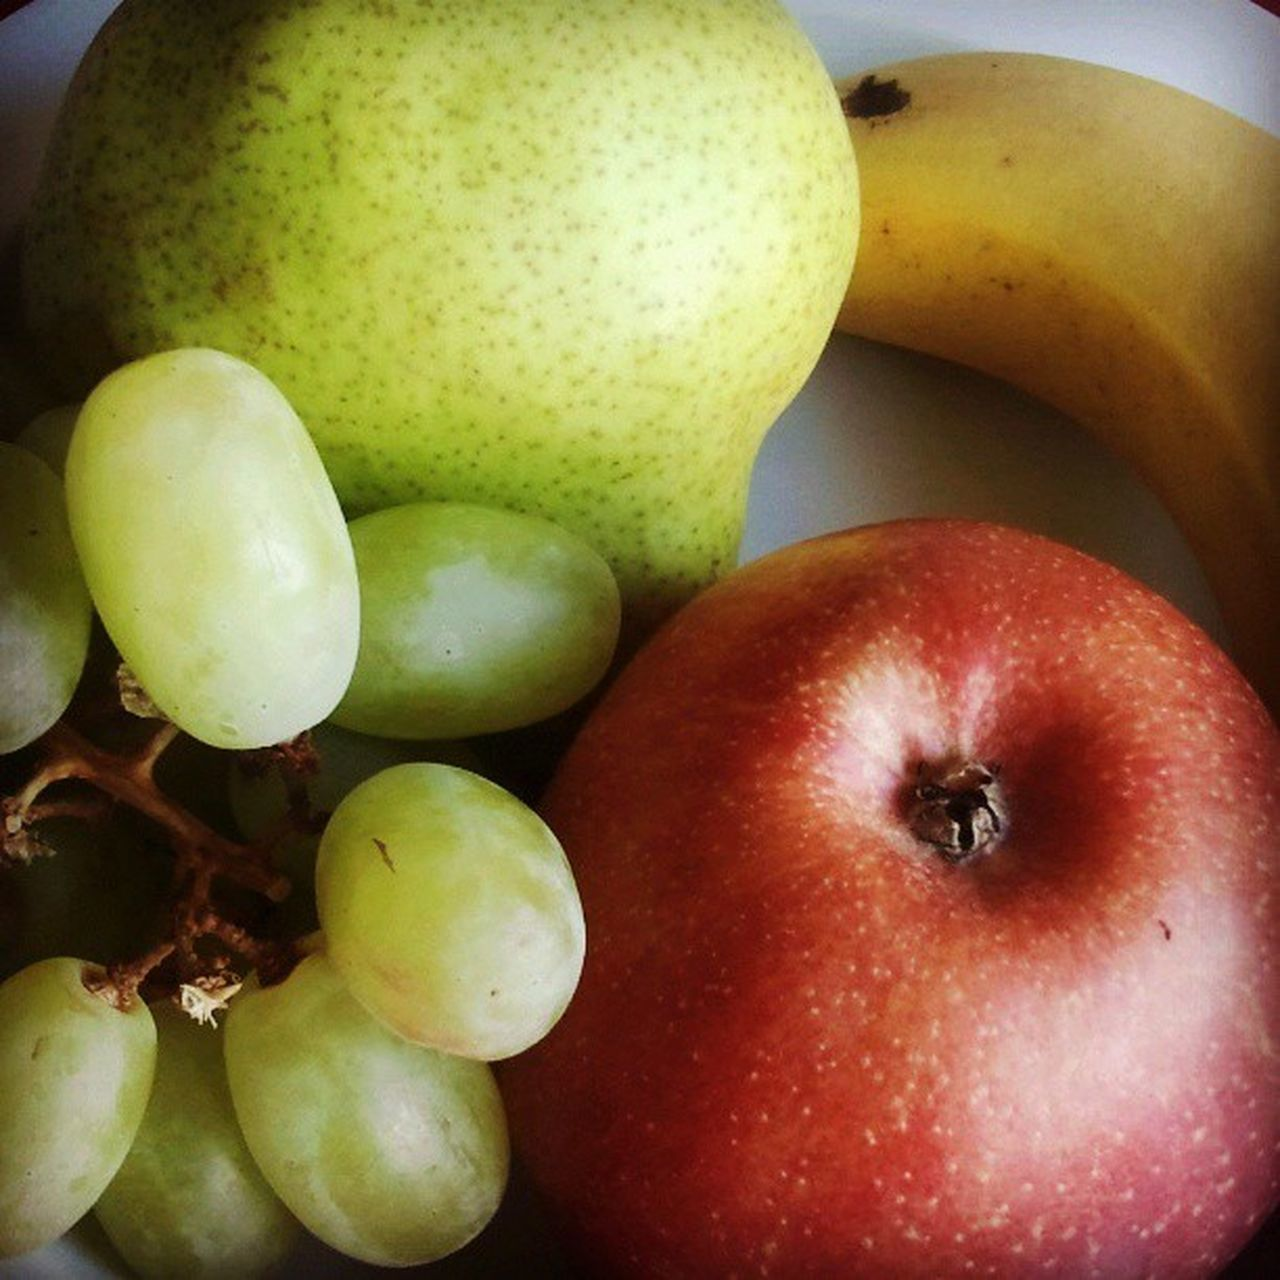 fruit, healthy eating, apple - fruit, food and drink, food, freshness, apple, close-up, pear, ripe, peach, no people, red, indoors, granny smith apple, pomegranate, mango, day